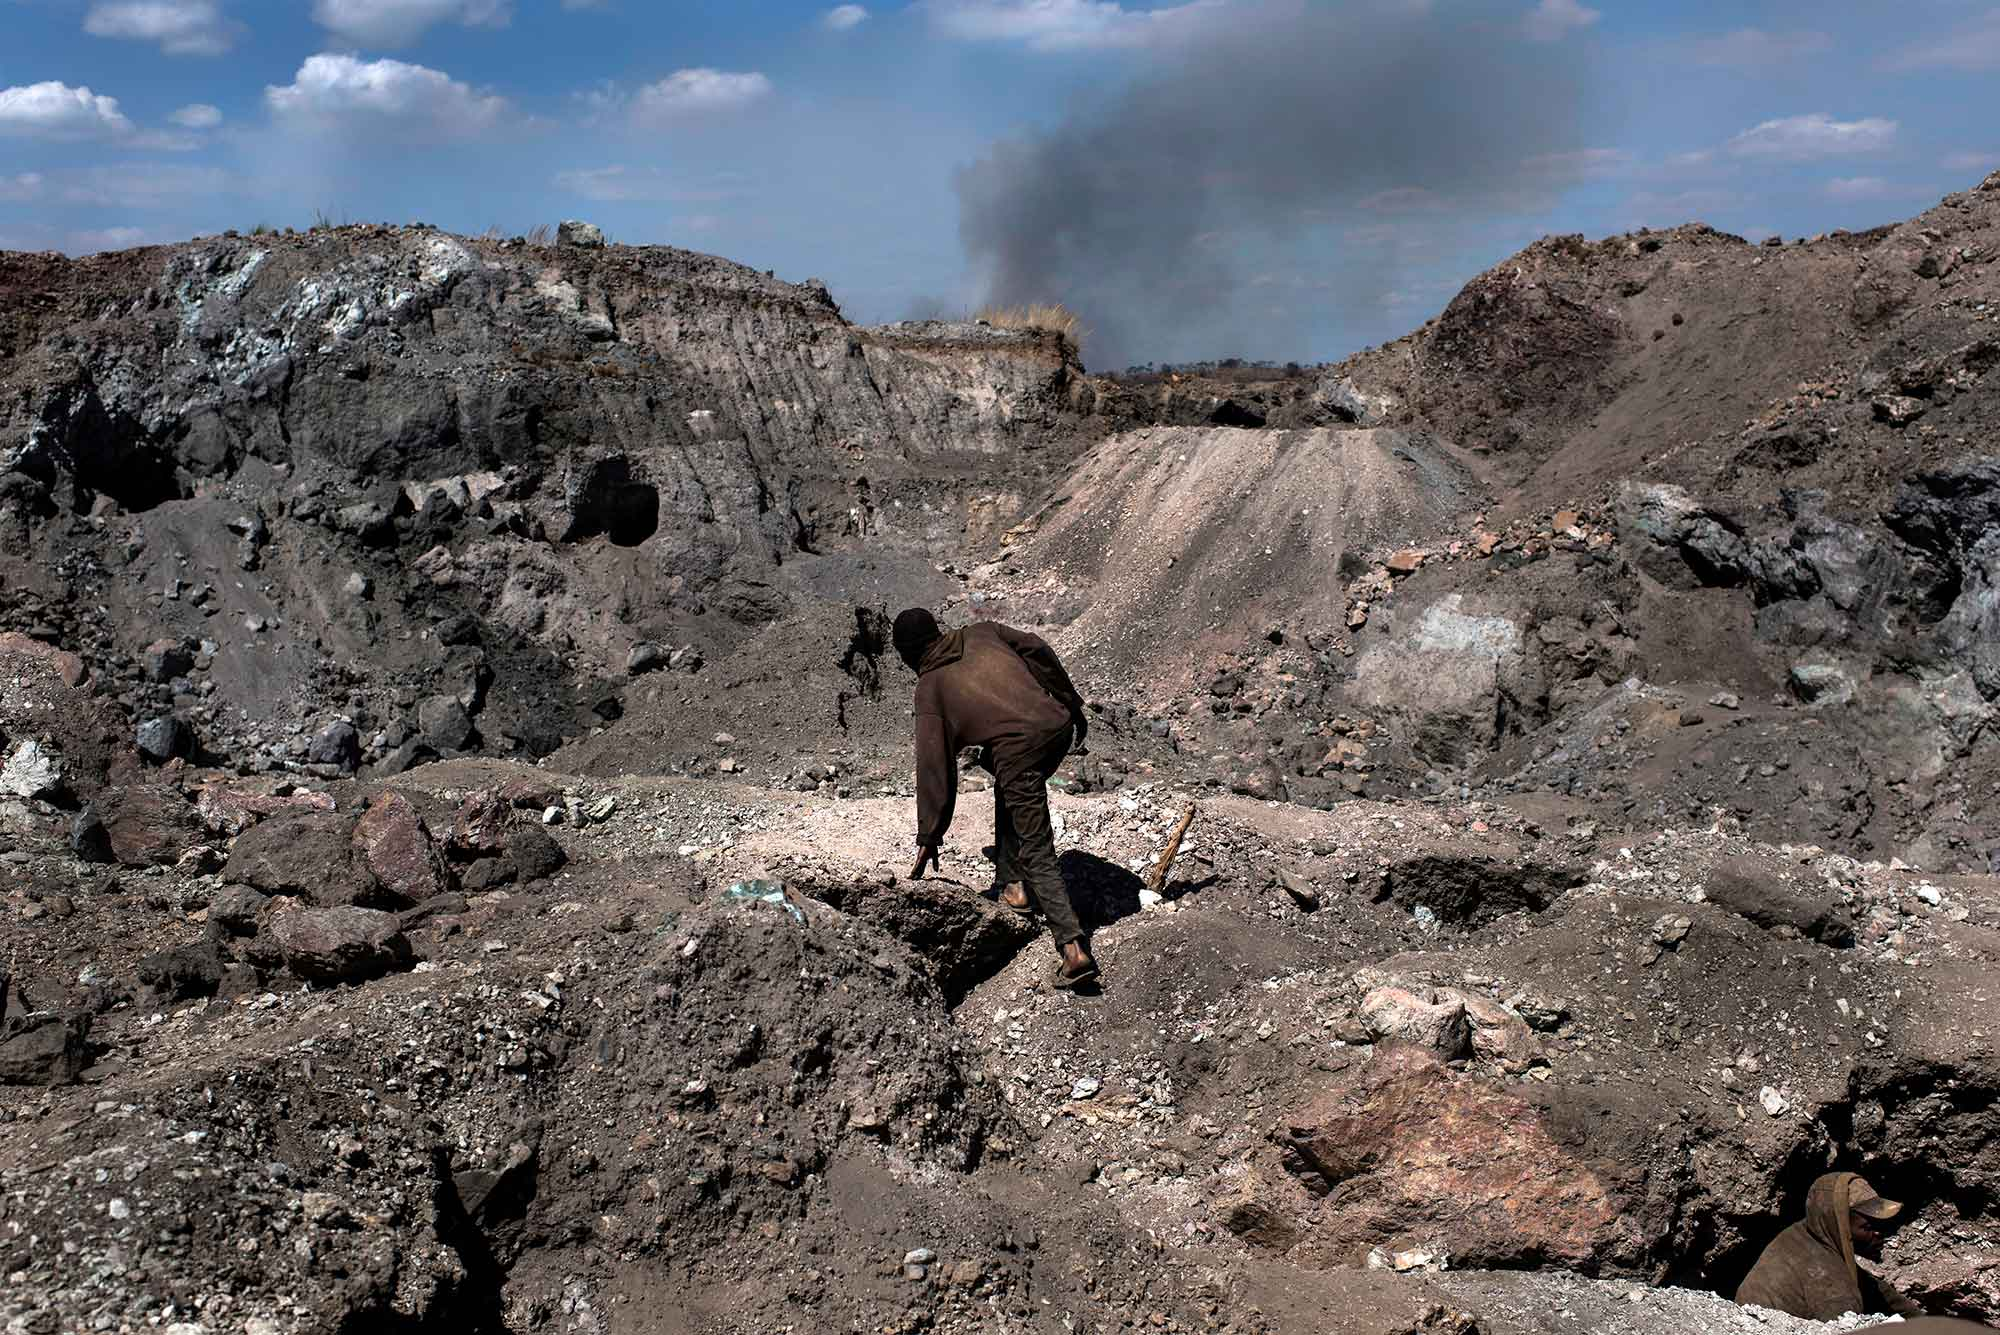 """KAWAMA, DEMOCRATIC REPUBLIC OF CONGO - JUNE 8 A """"creuseur,"""" or digger, climbs through the mine in Kawama, Democratic Republic of Congo on June 8, 2016. The cobalt that is extracted is sold to a Chinese company, CDM. Cobalt is used in the batteries for electric cars and mobile phones. Working conditions are dangerous with no safety equipment or structural support for the tunnels. The diggers are paid on average US$2-3/day. (Michael Robinson Chavez/The Washington Post)"""